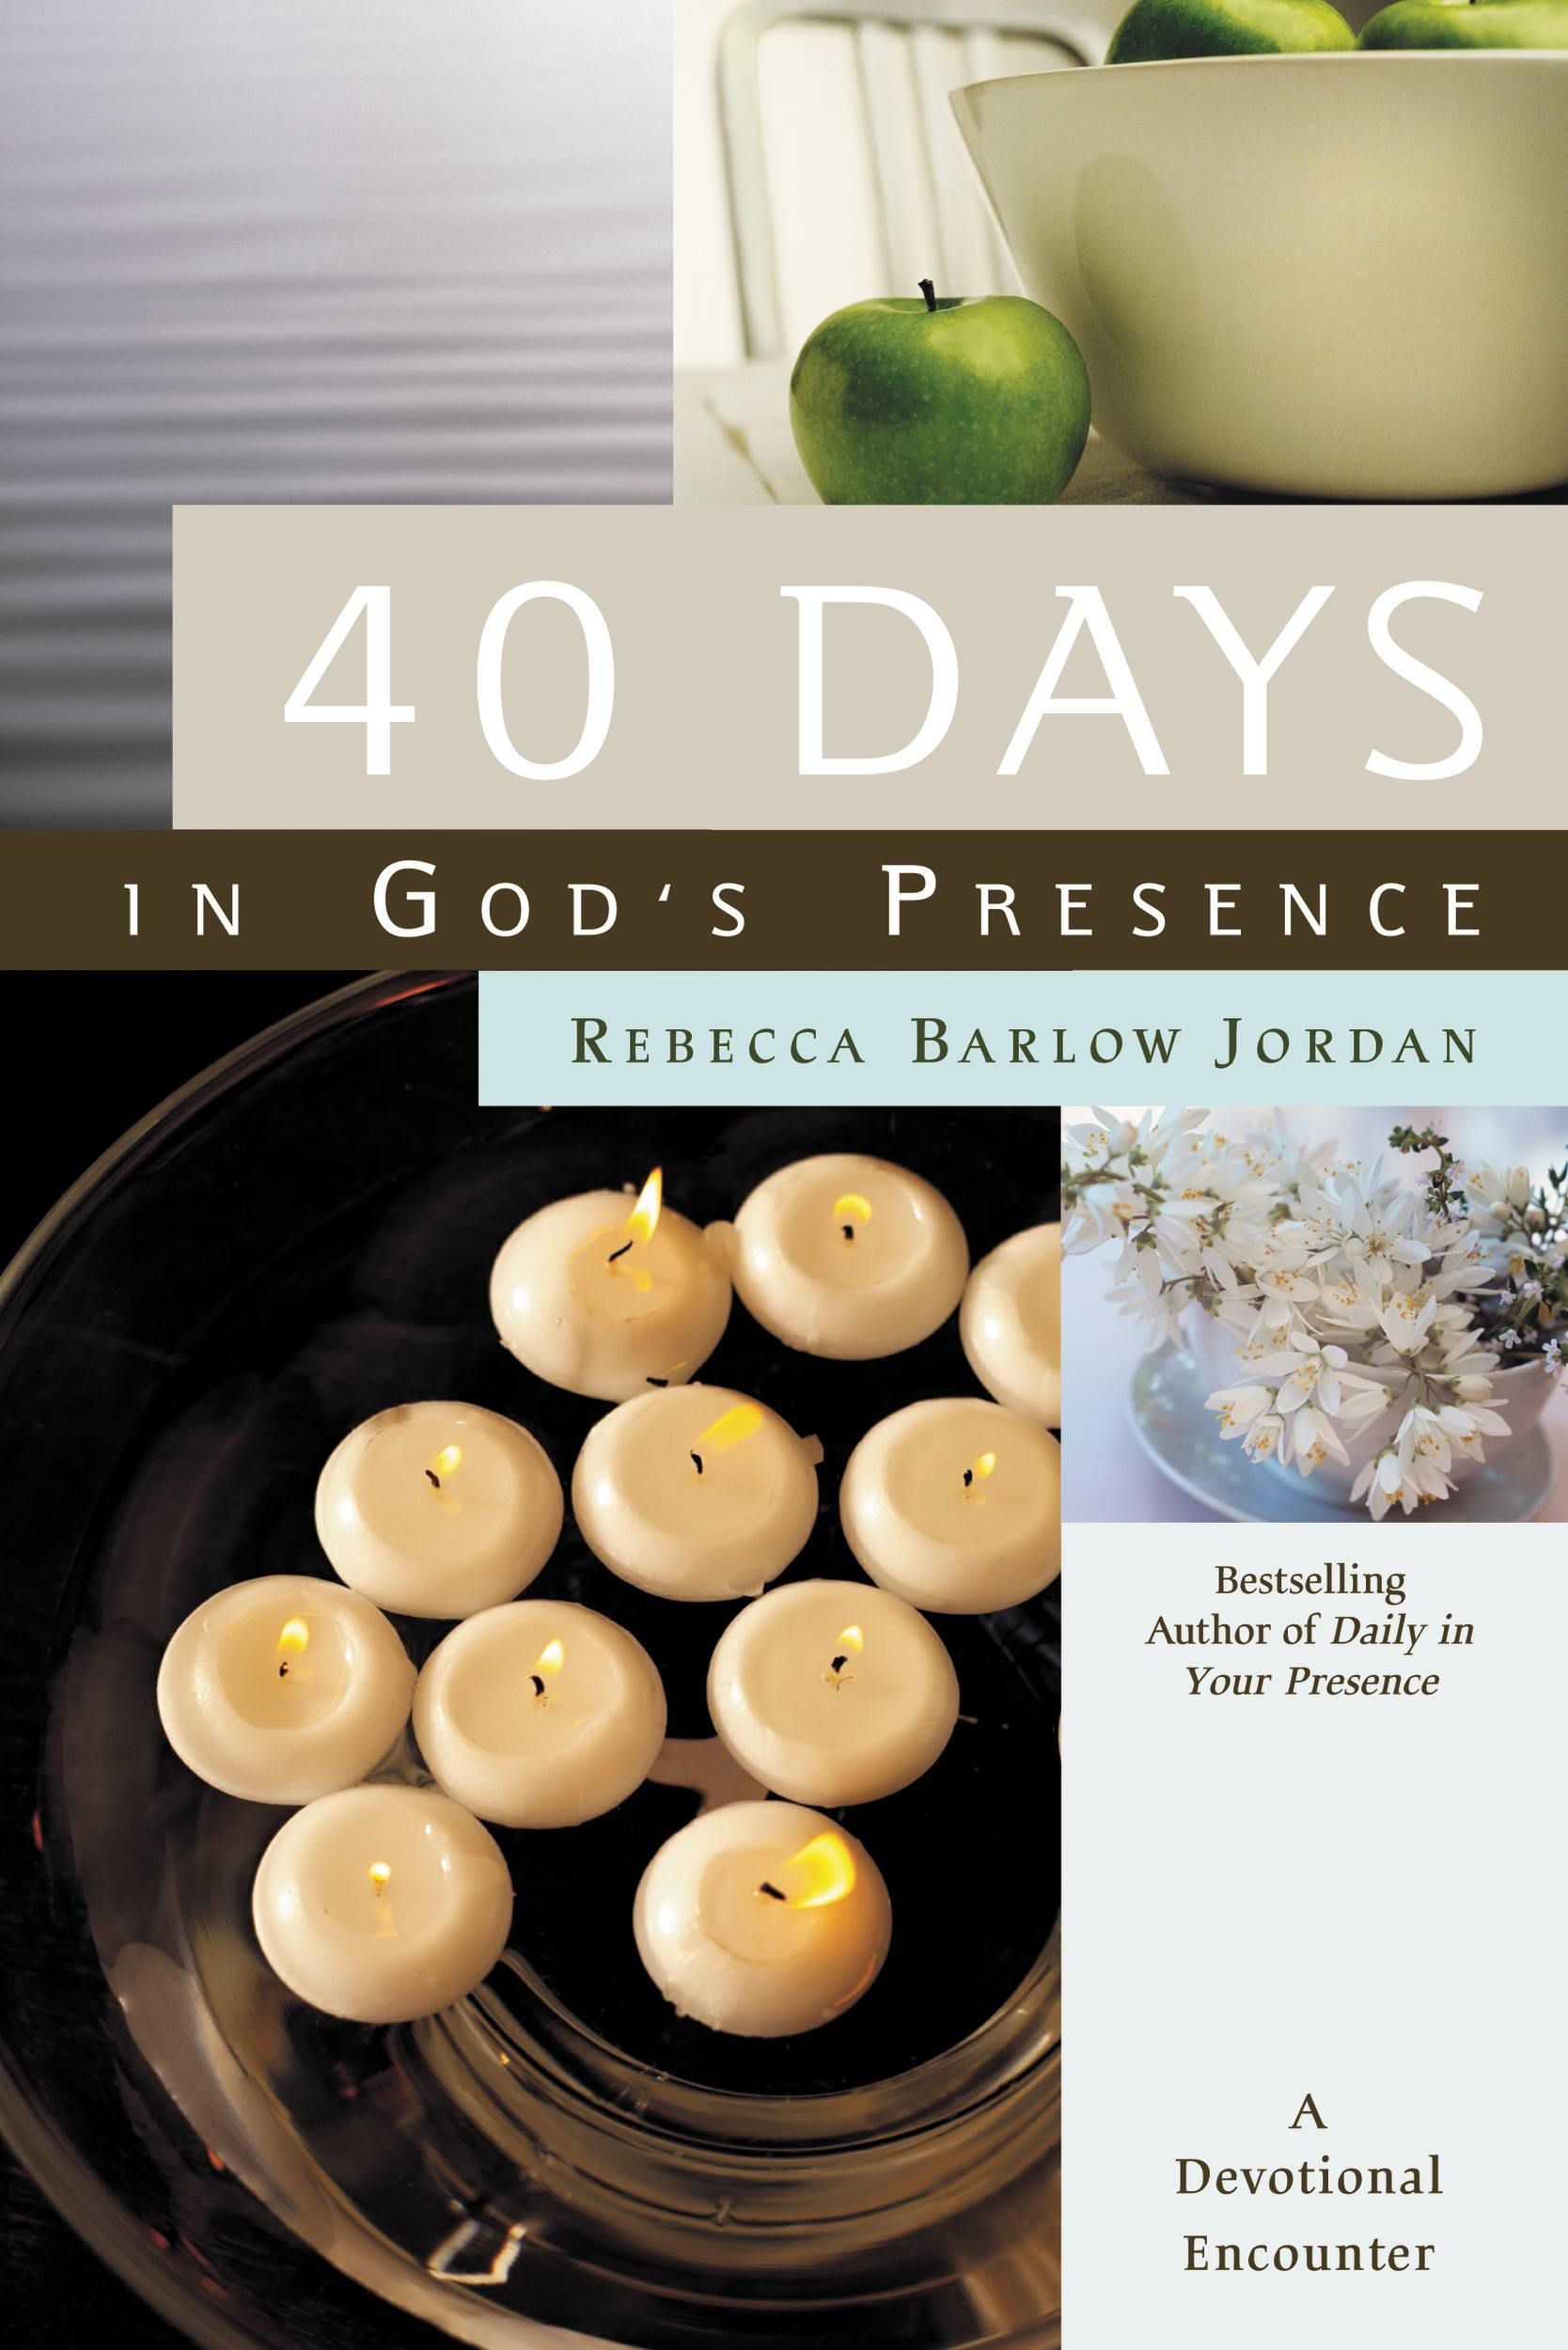 40 Days In God's Presence